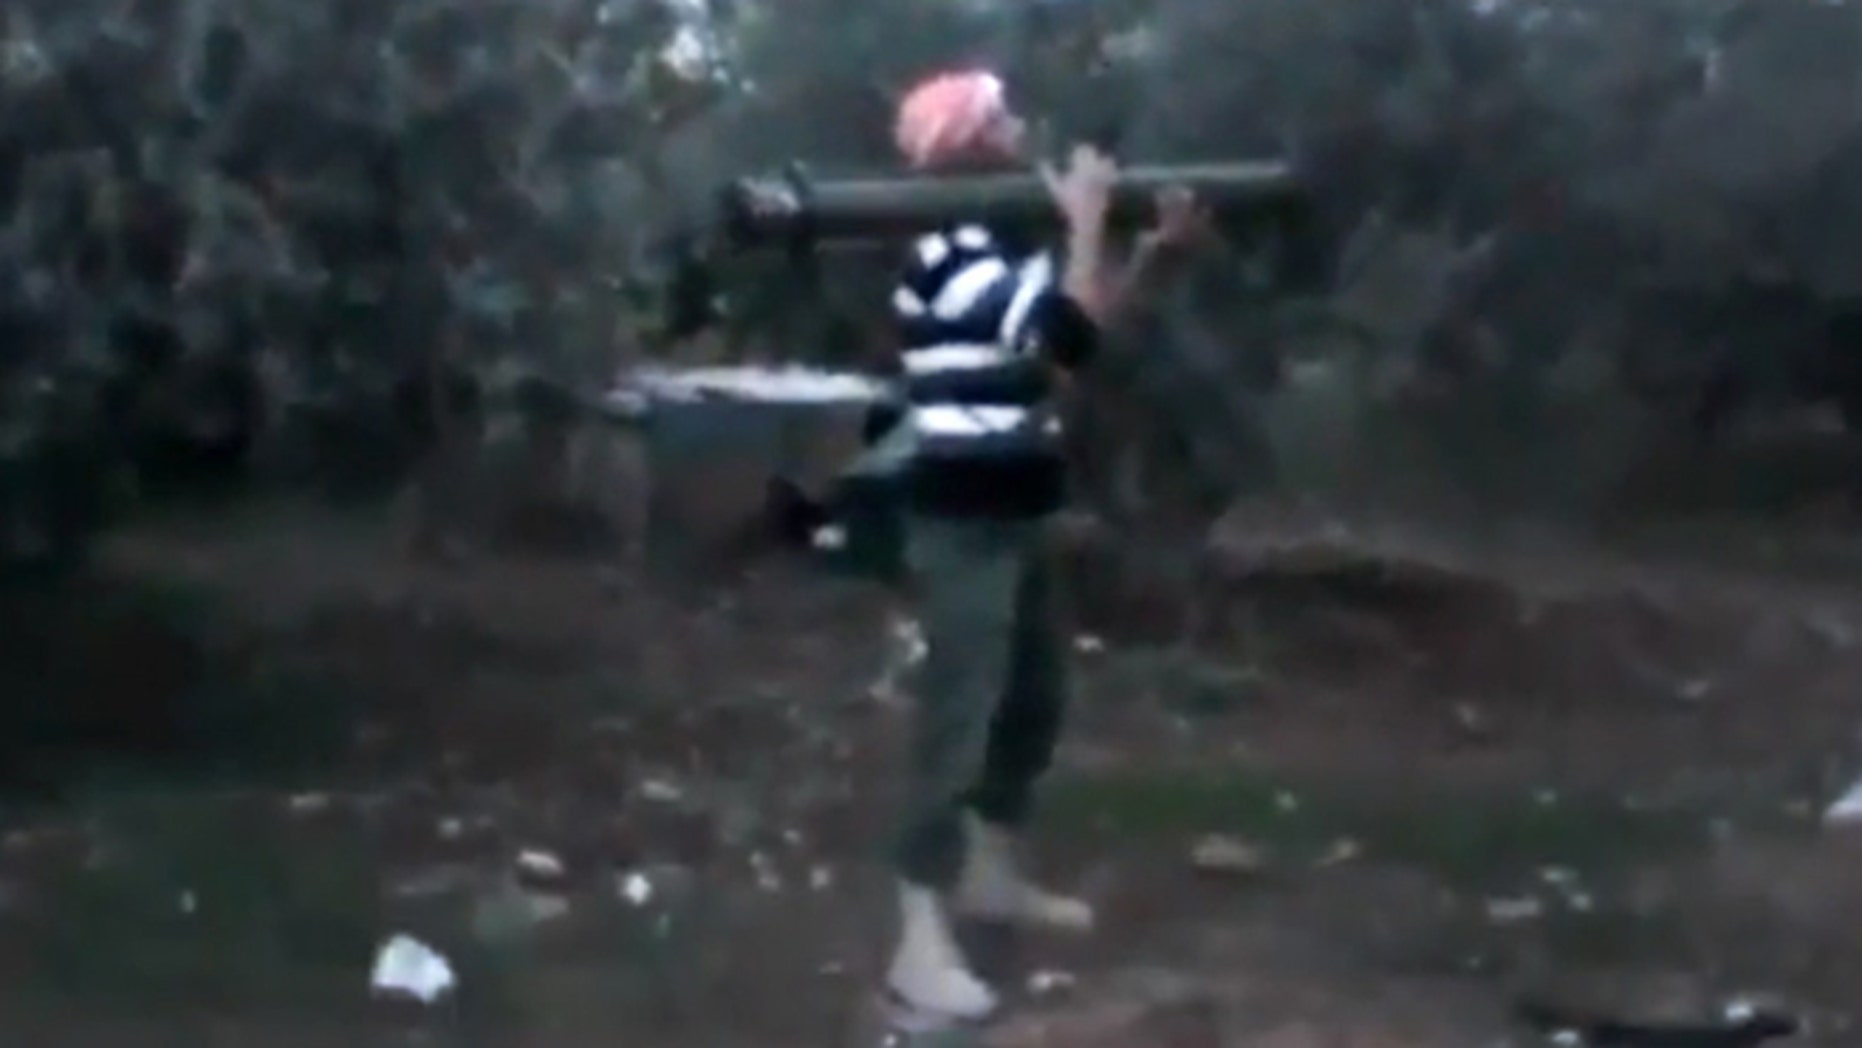 Nov. 27 2012: A Free Syrian Army fighter fires his weapon toward a military tank, unseen, in Daraa, Syria.